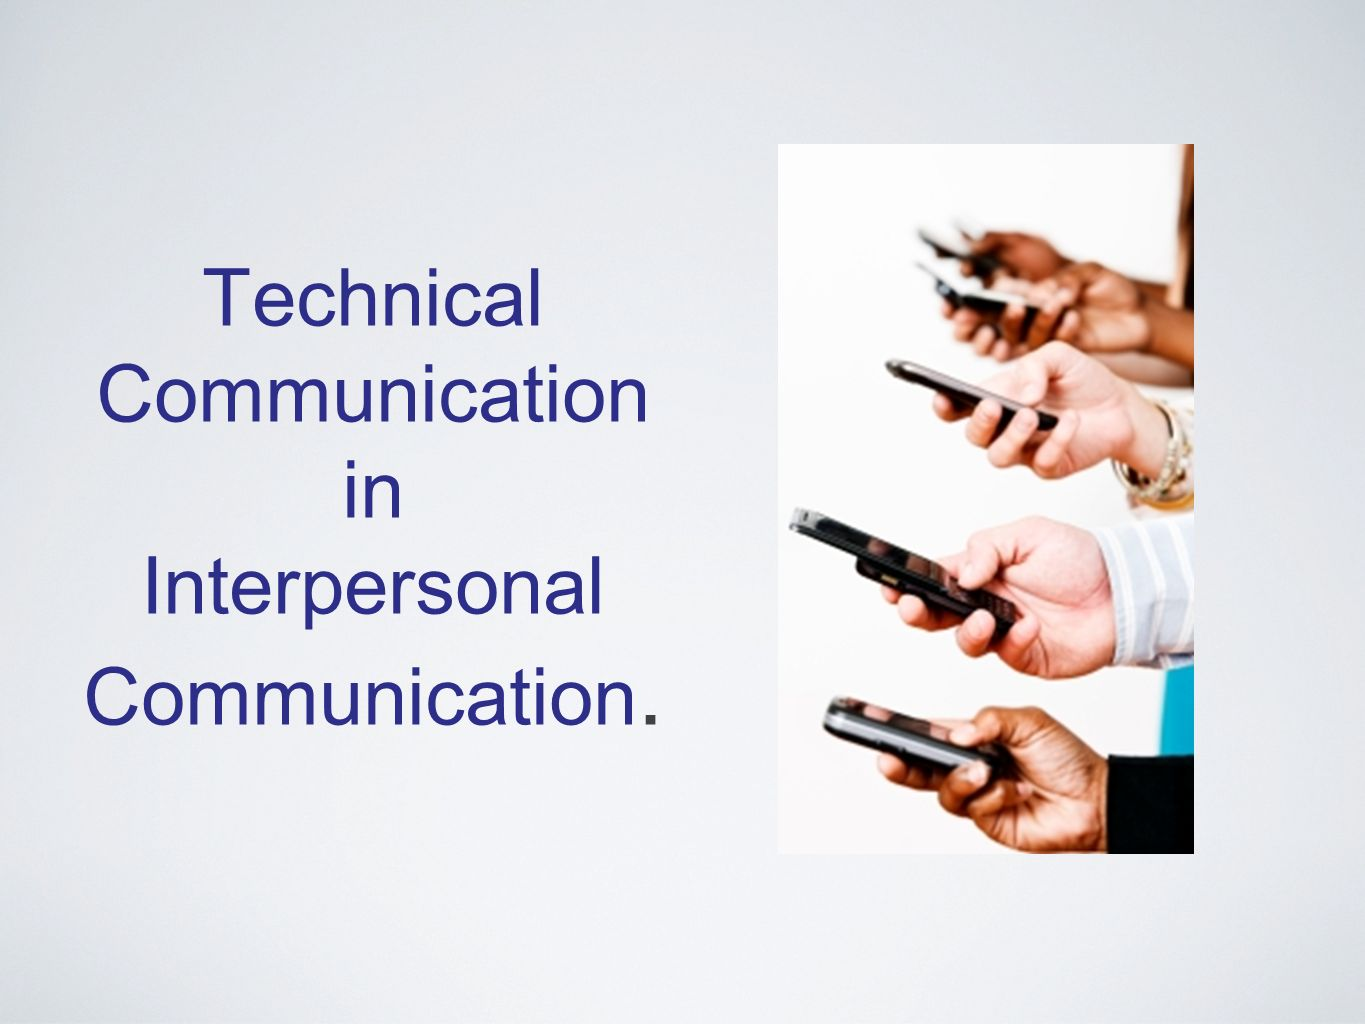 Technical Communication in Interpersonal Communication.